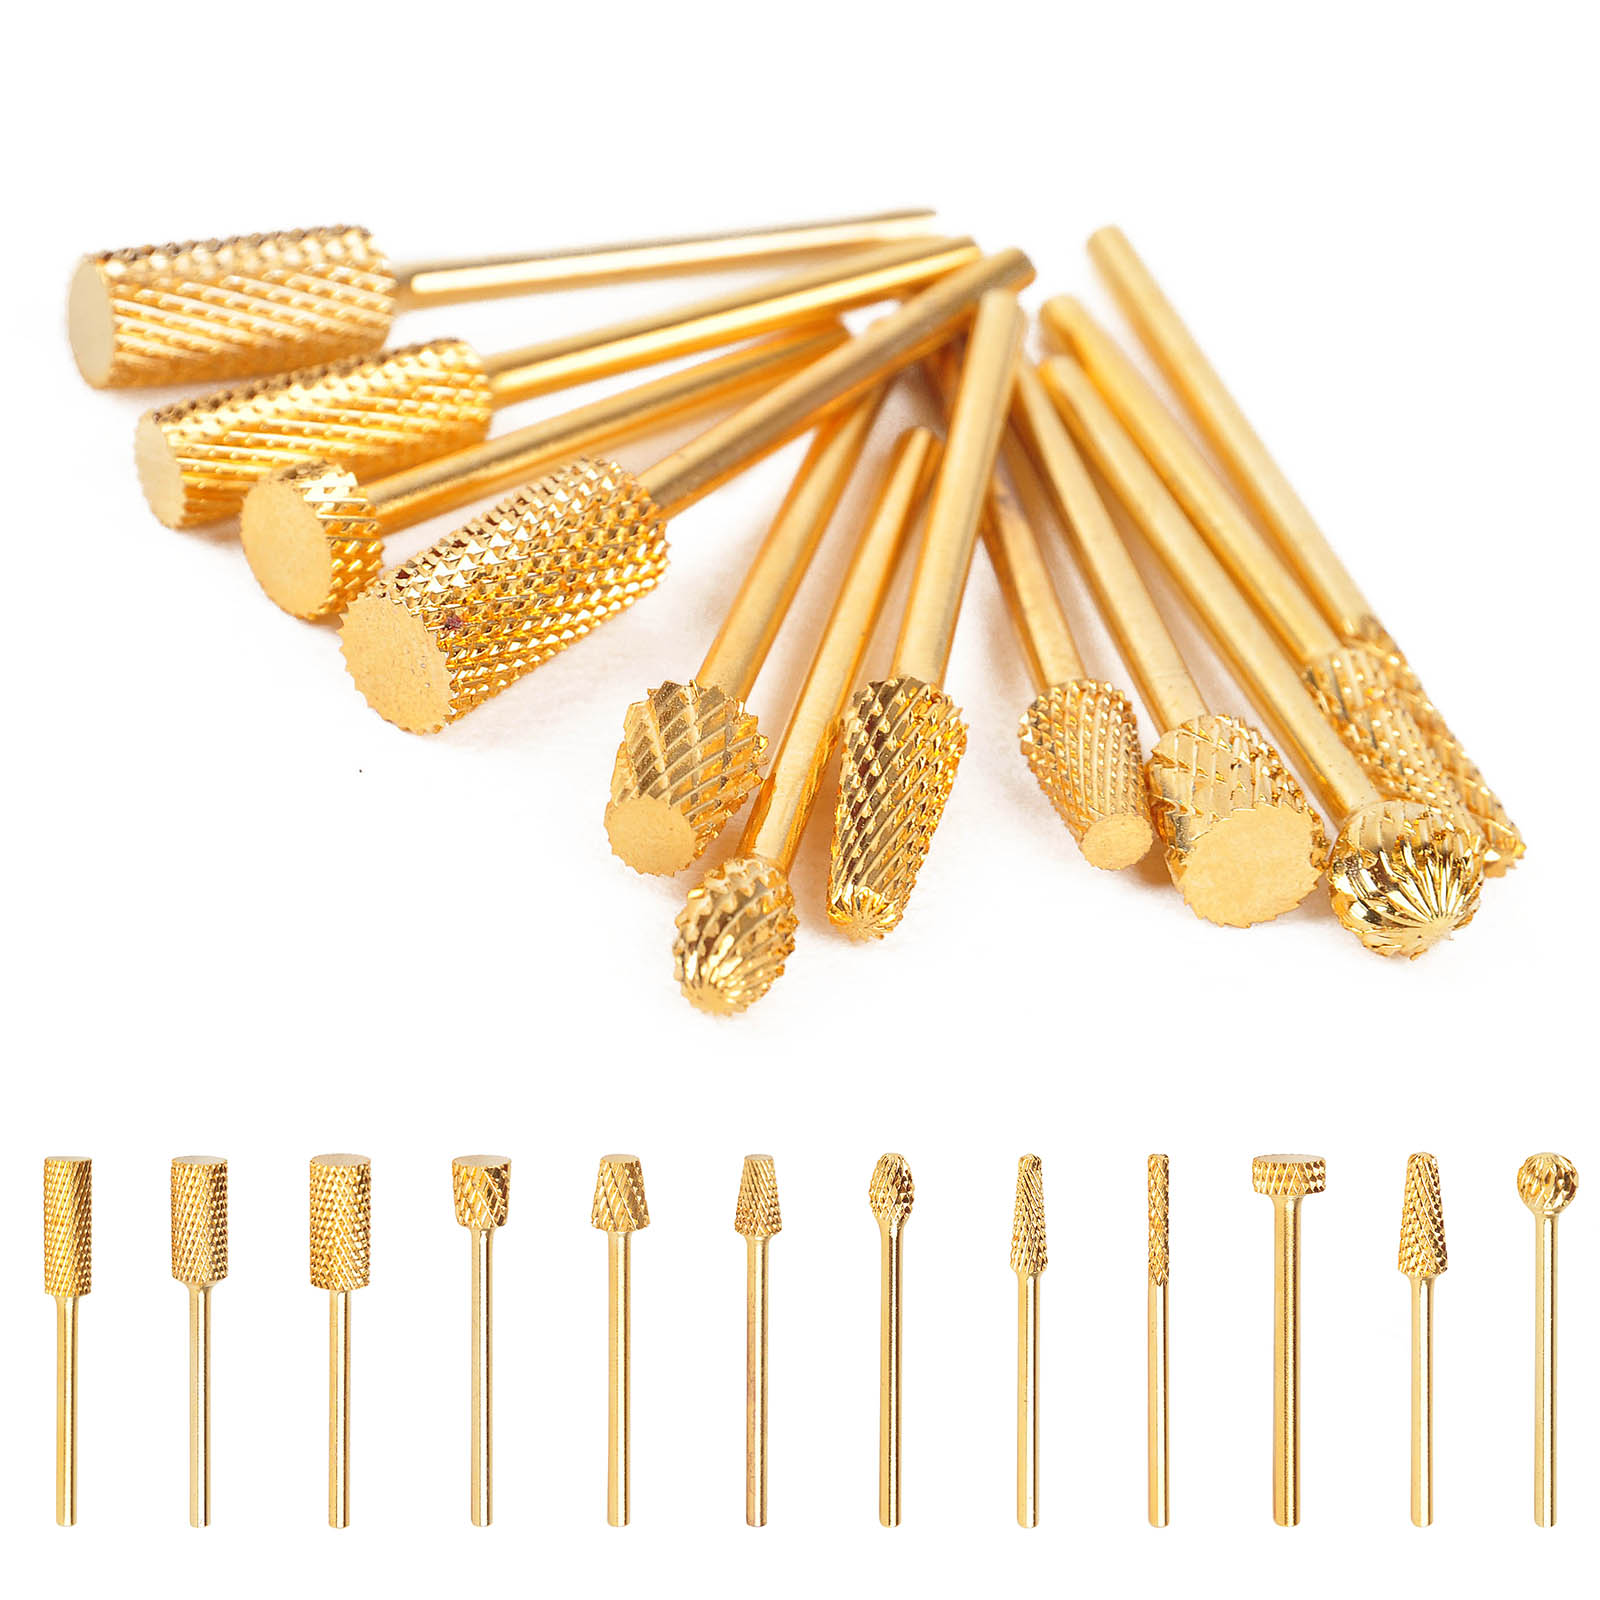 Mayitr 12 Types Nail Drill Carbide Bit High Quality Golden Electric Nail Drill File Carbide Bits Nail Art Manicure Pedicure Tool